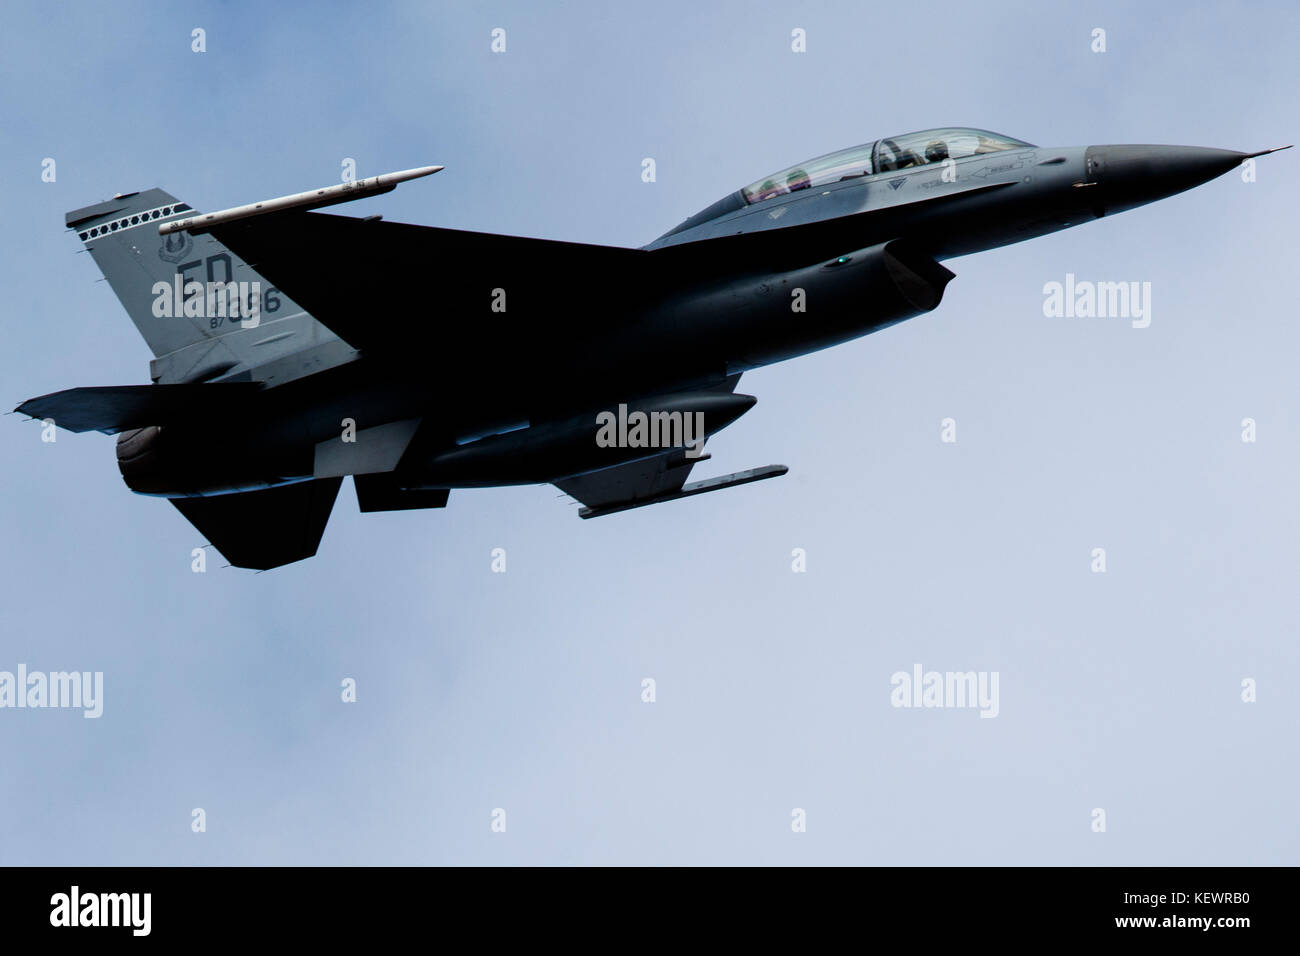 United States Air Force General Dynamics F-16D Fighting Falcon (87-0386) from 412th Test Wing, Edwards Air Force - Stock Image